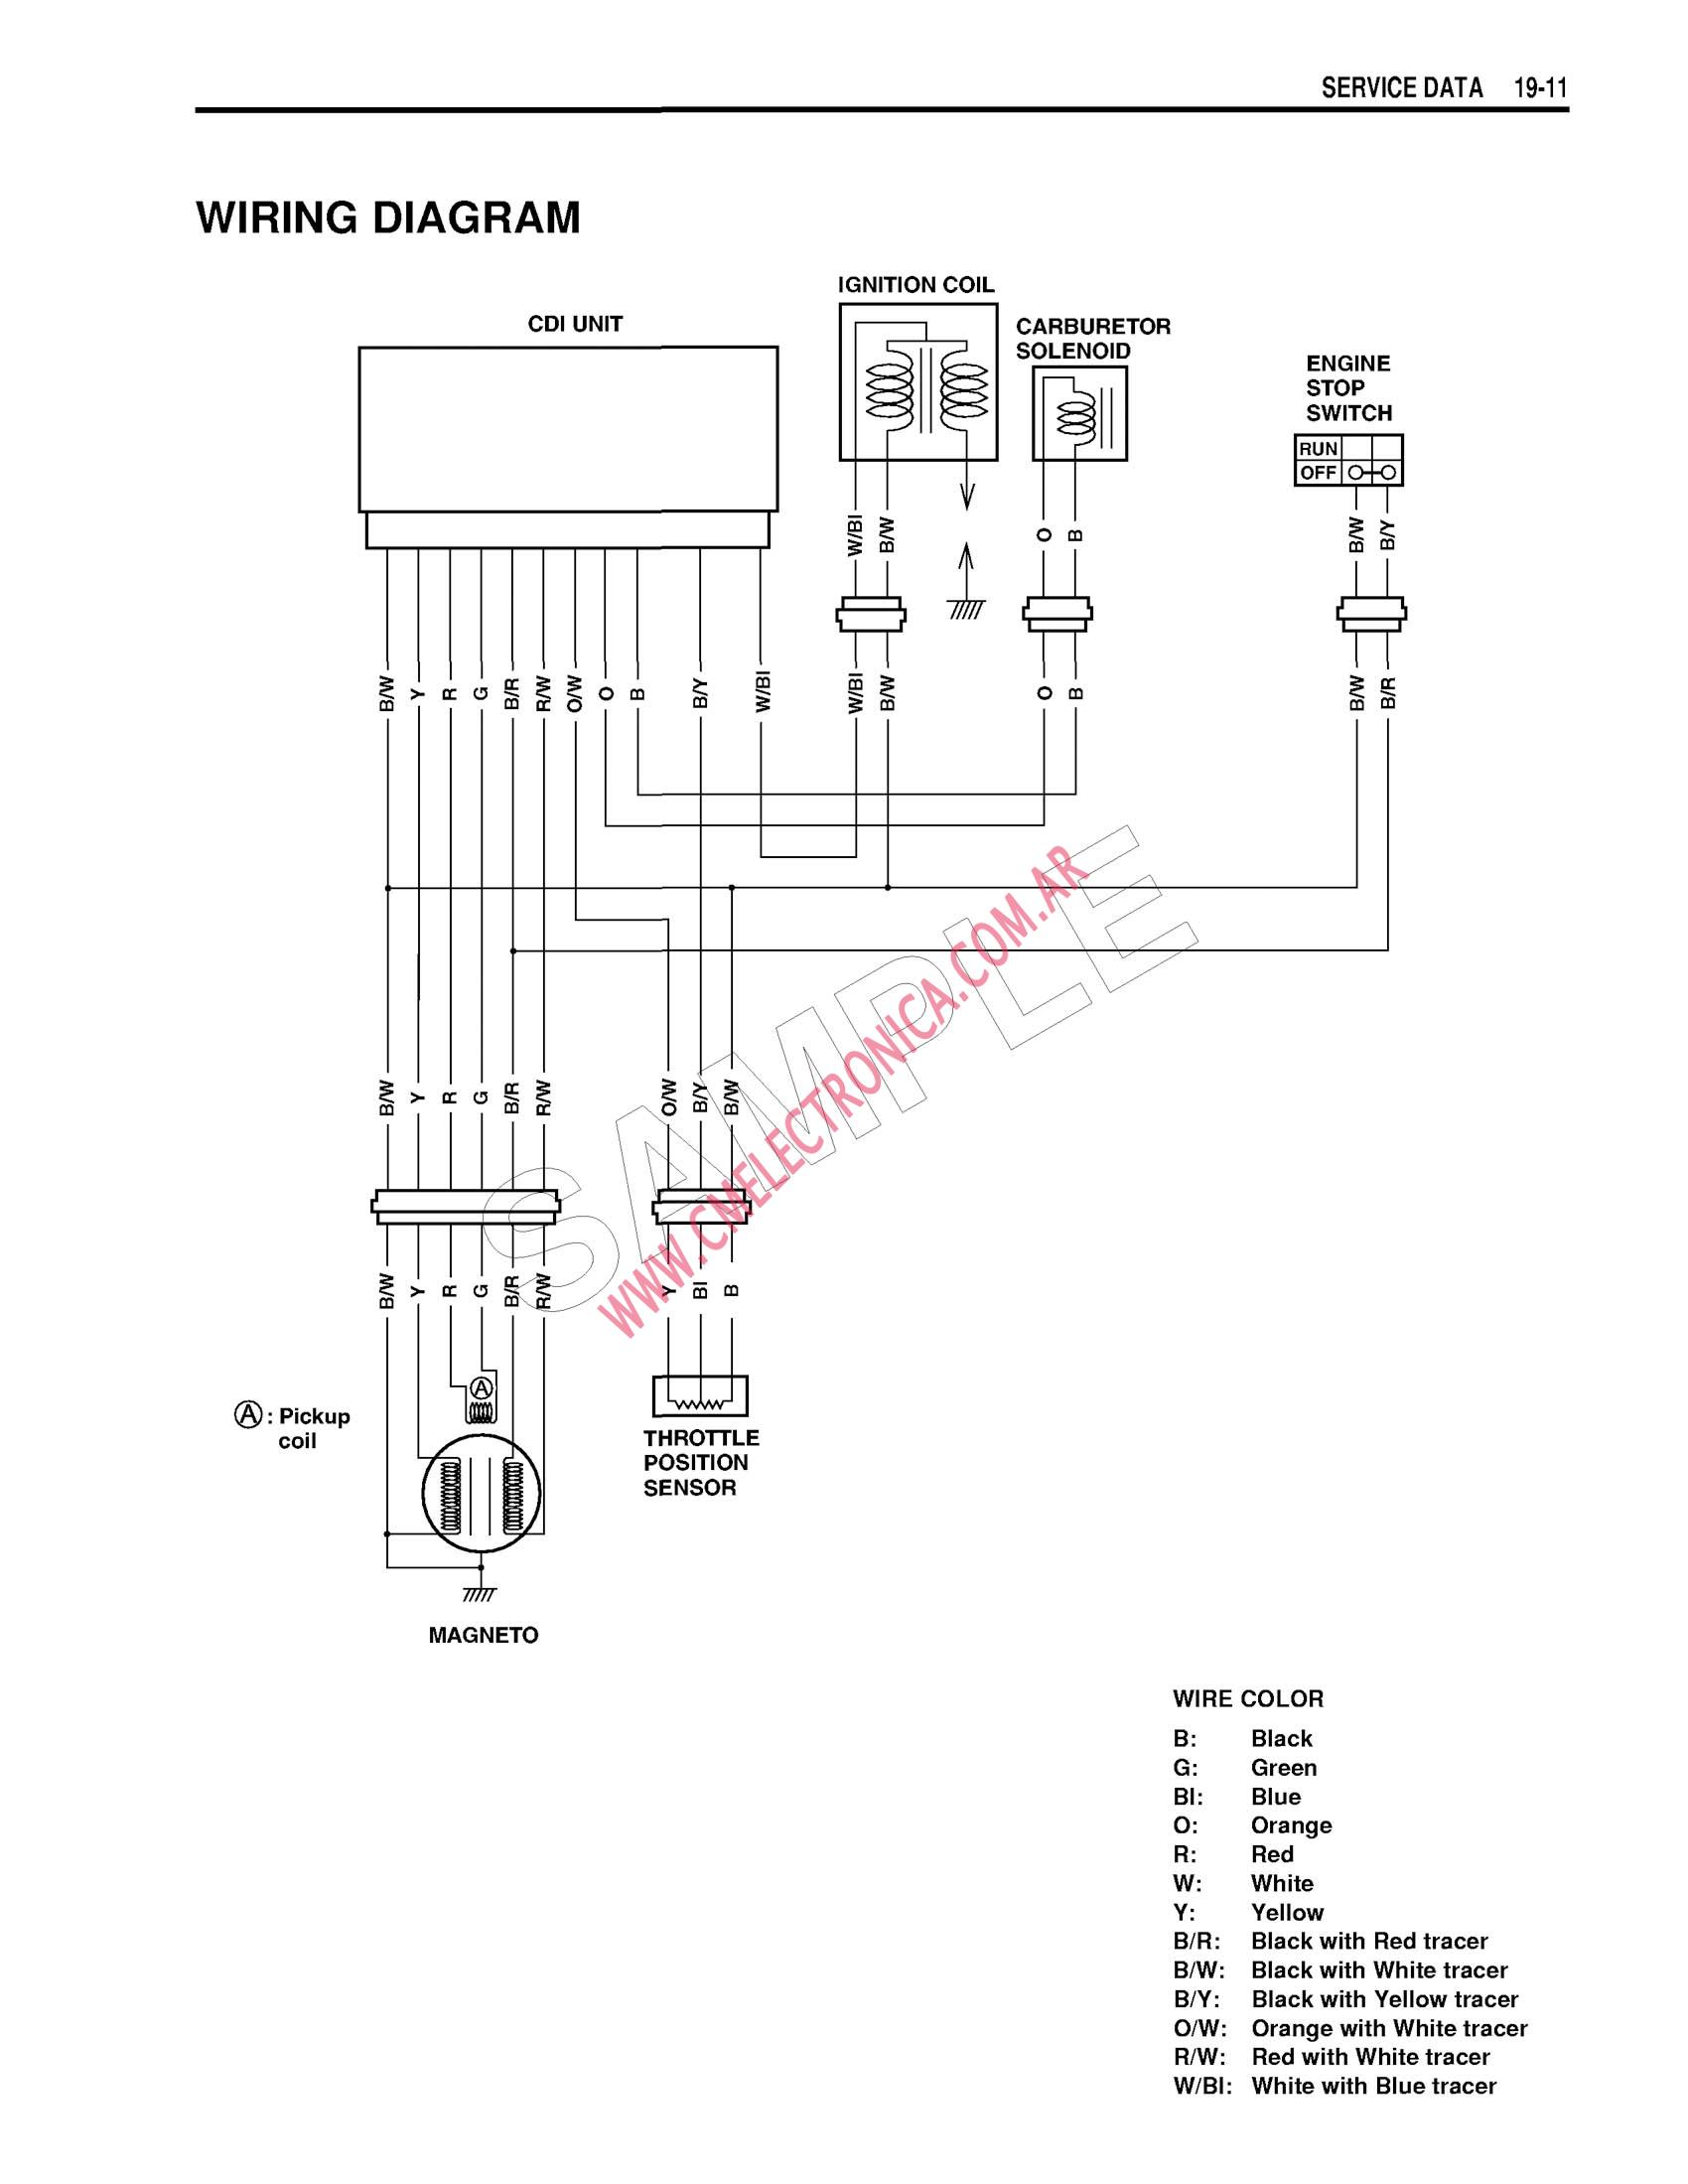 Hanma 110 Atv Wiring Diagram